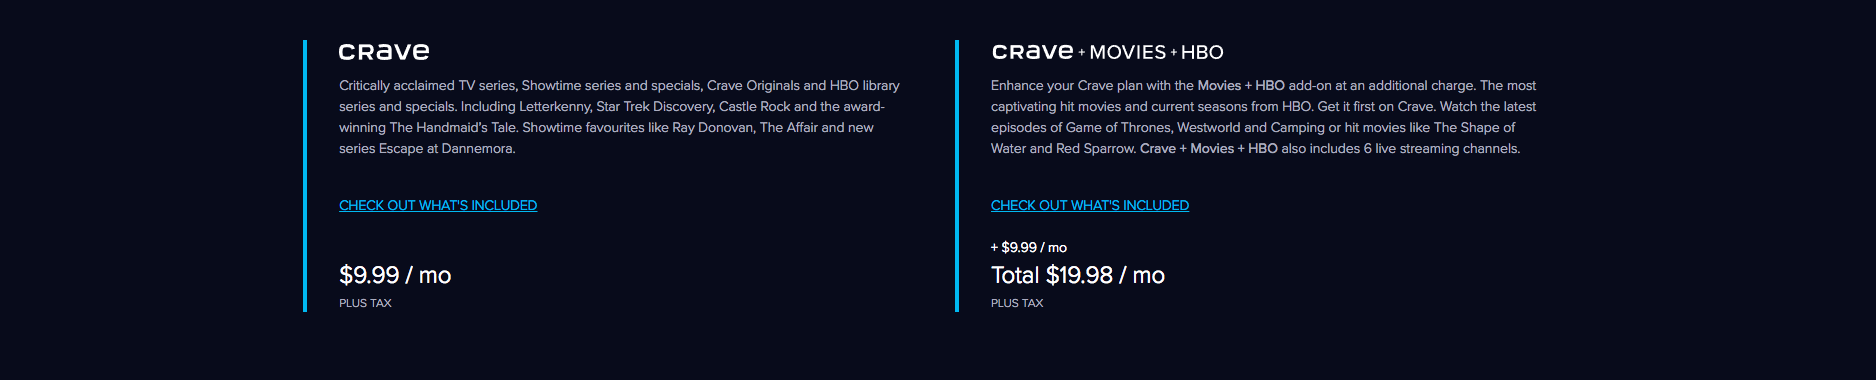 Crave TV - Pricing Plans.png